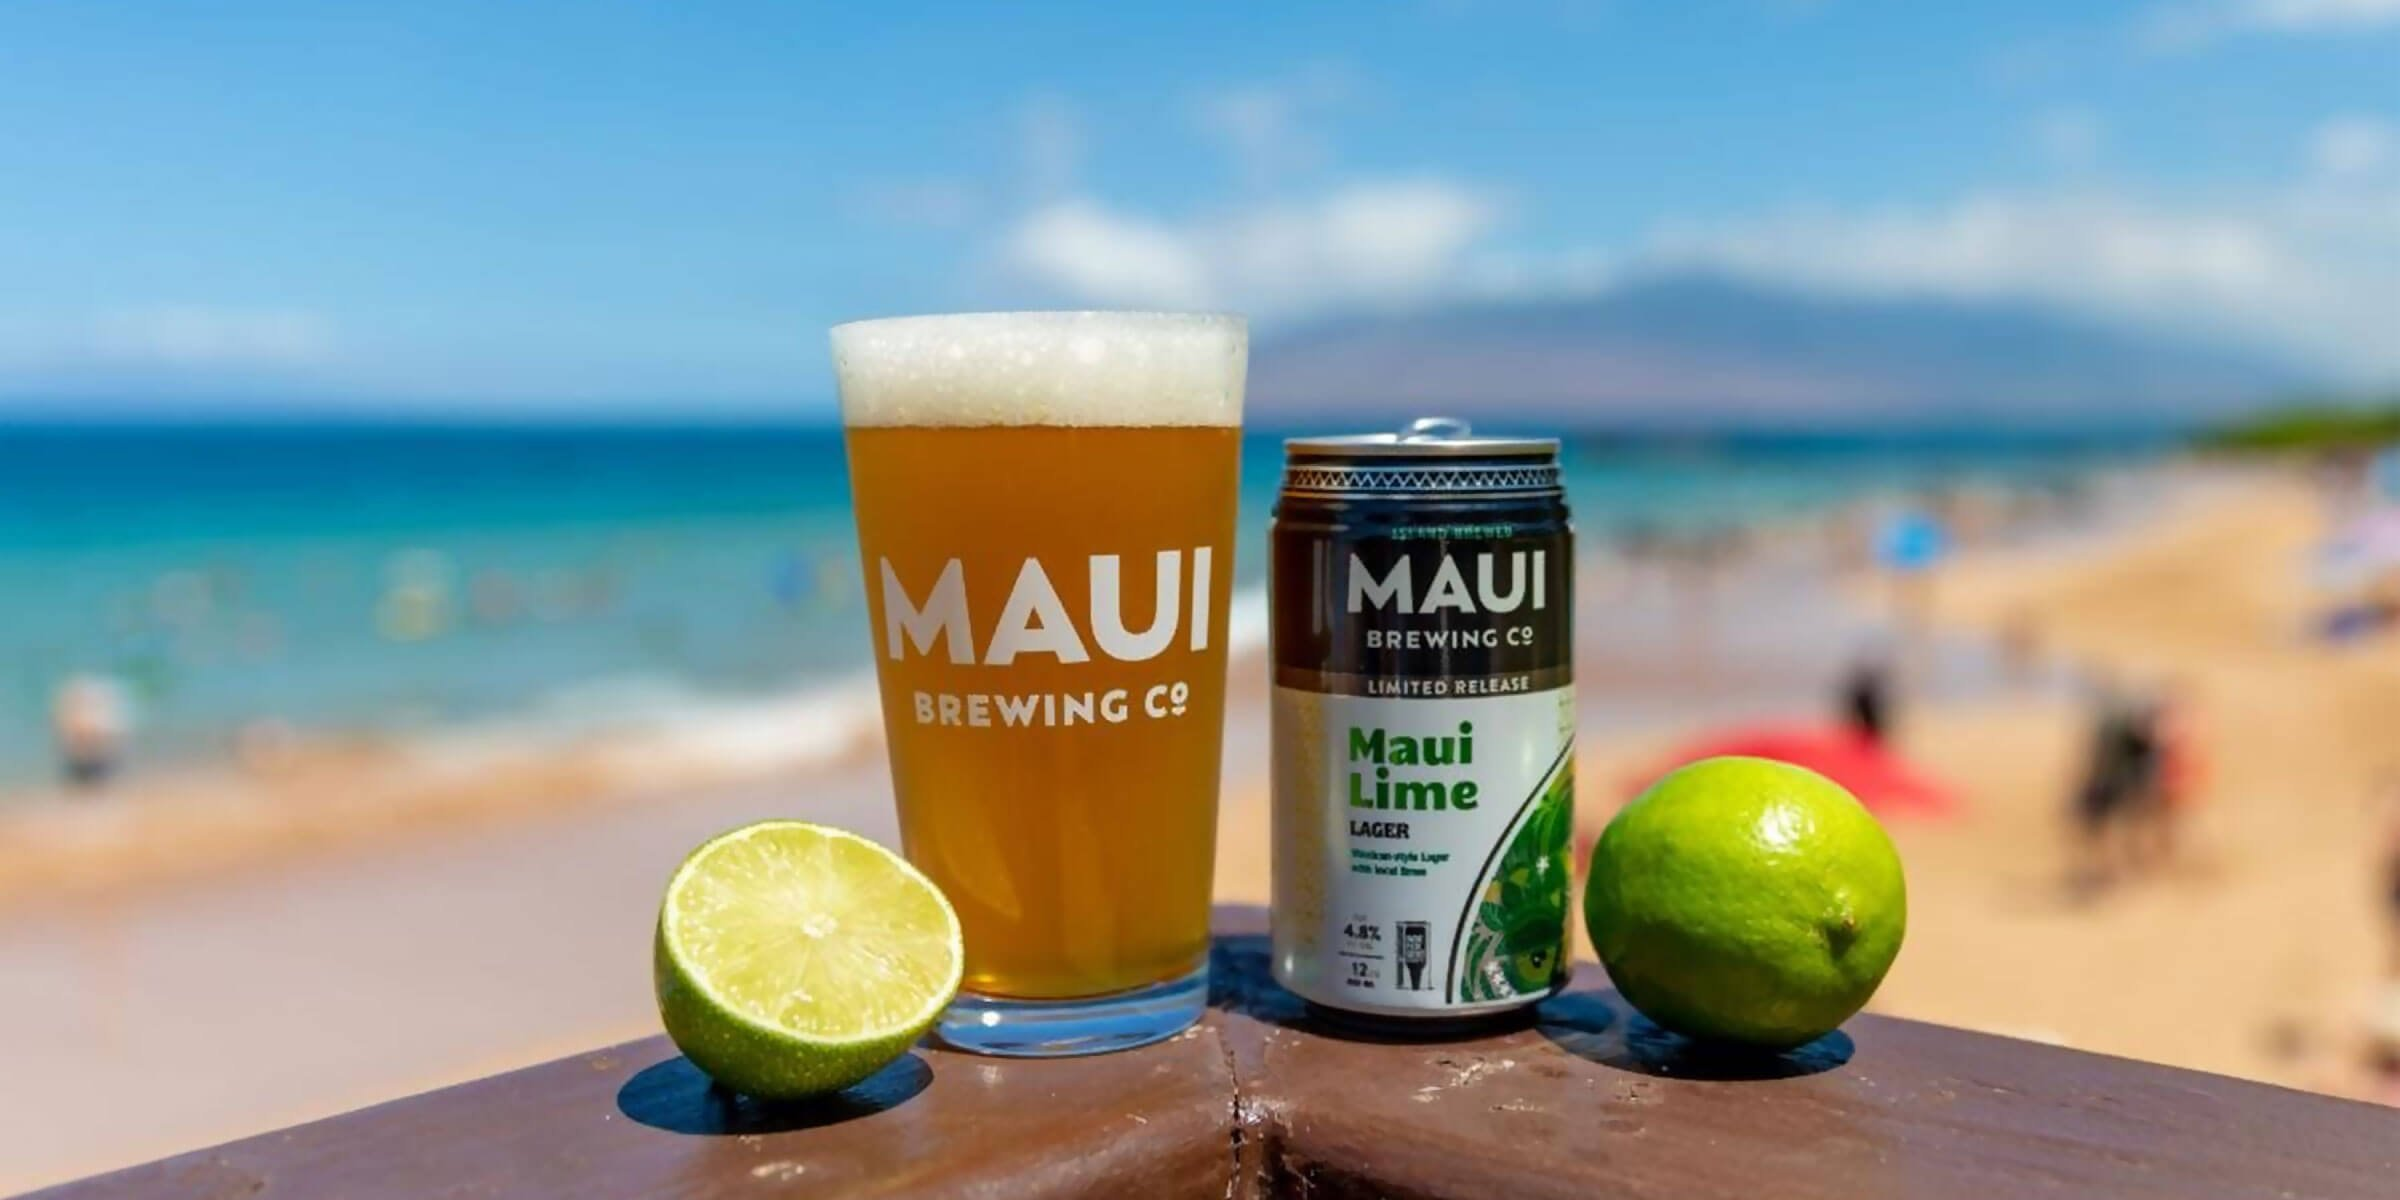 12 oz. can of the Maui Lime Lager and a Maui Brewing Company branded shaker pint glass